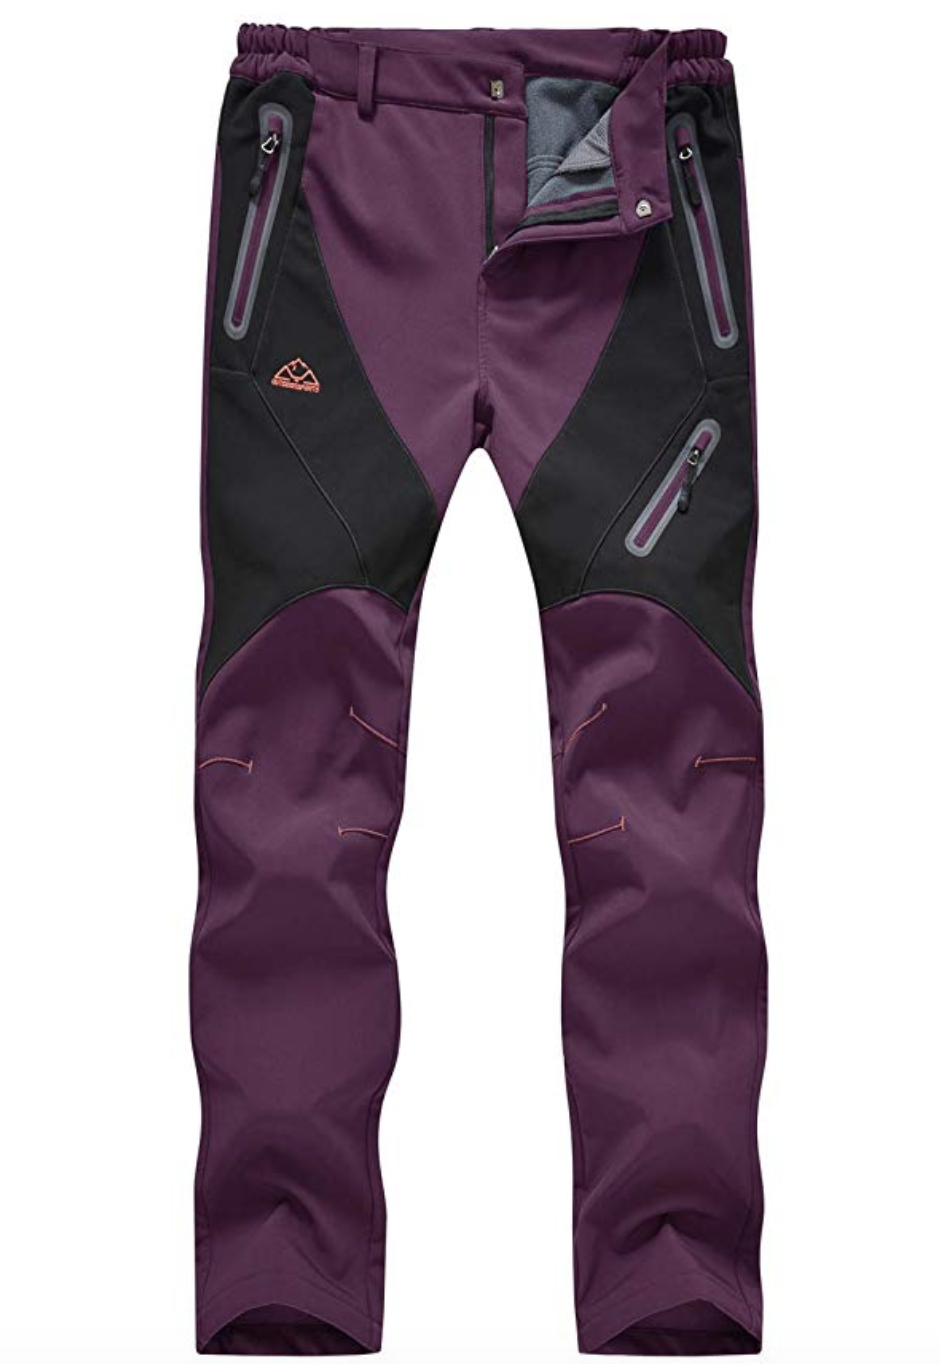 TBMPOY Women's Outdoor Softshell Ski Pants Under $150